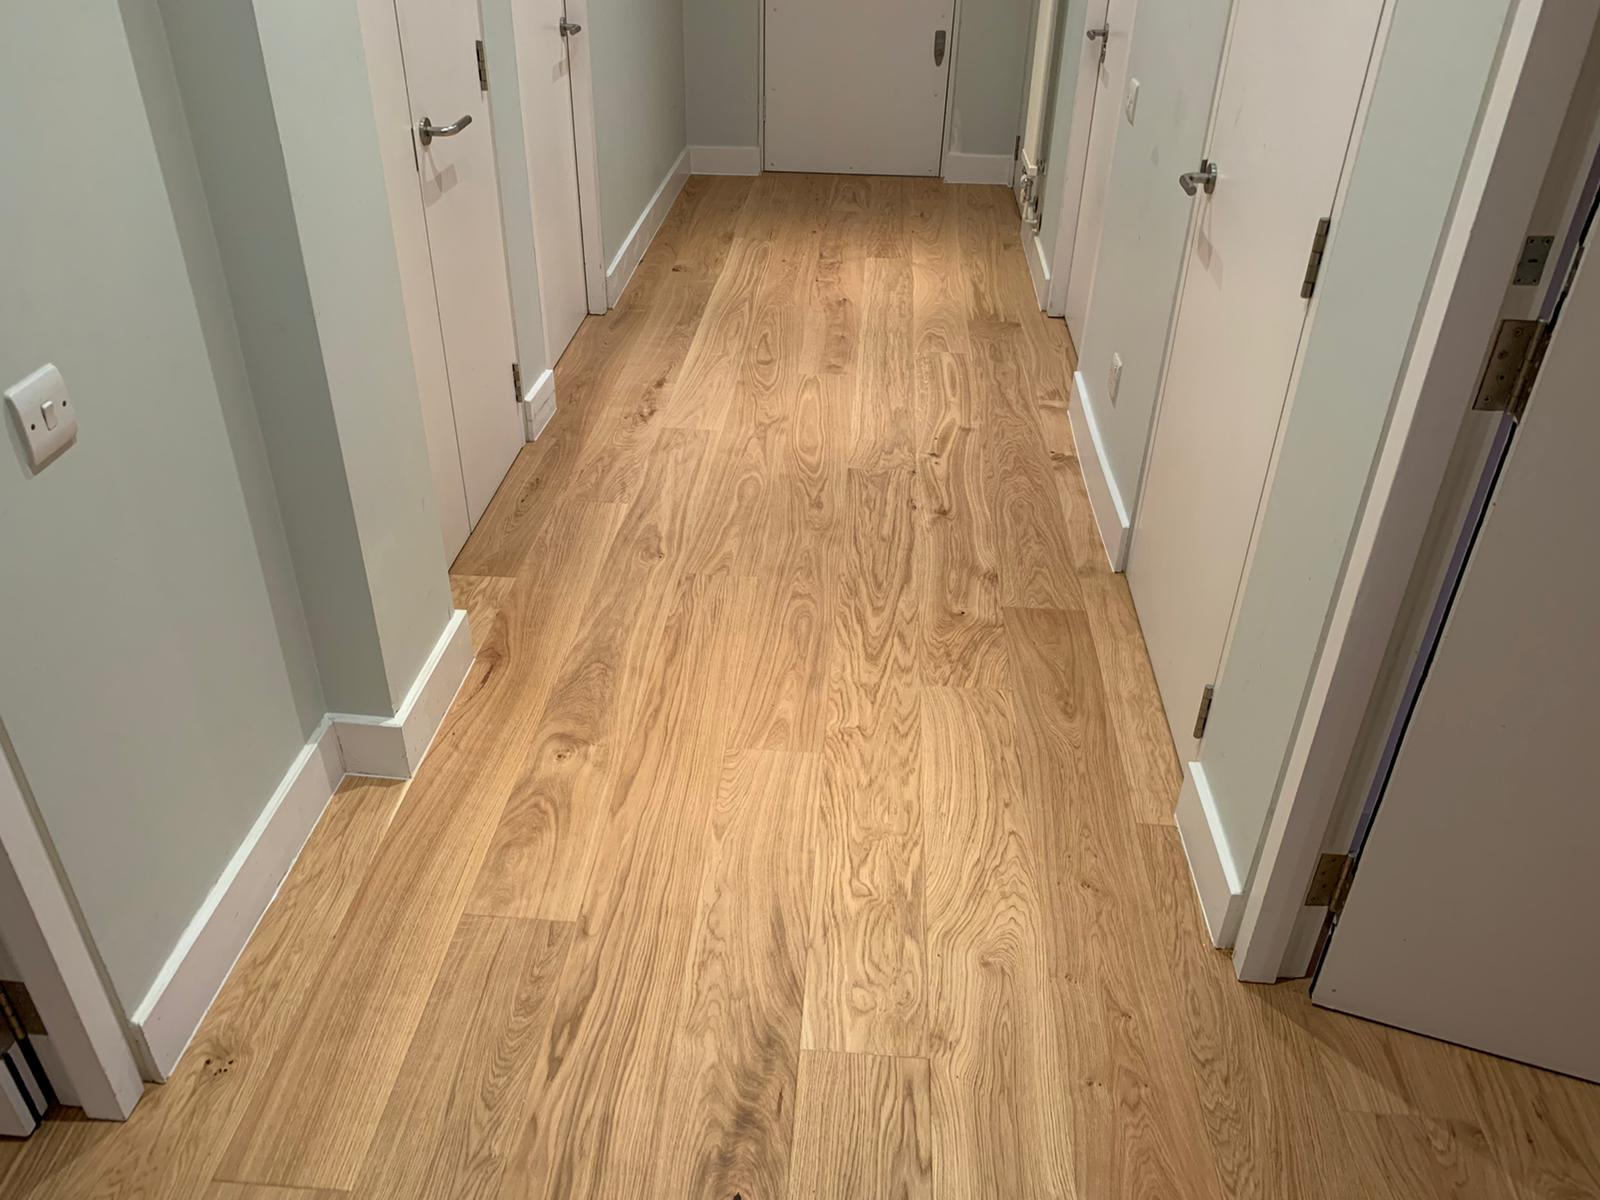 Kersaint Cobb hardwood flooring in Barnes 8